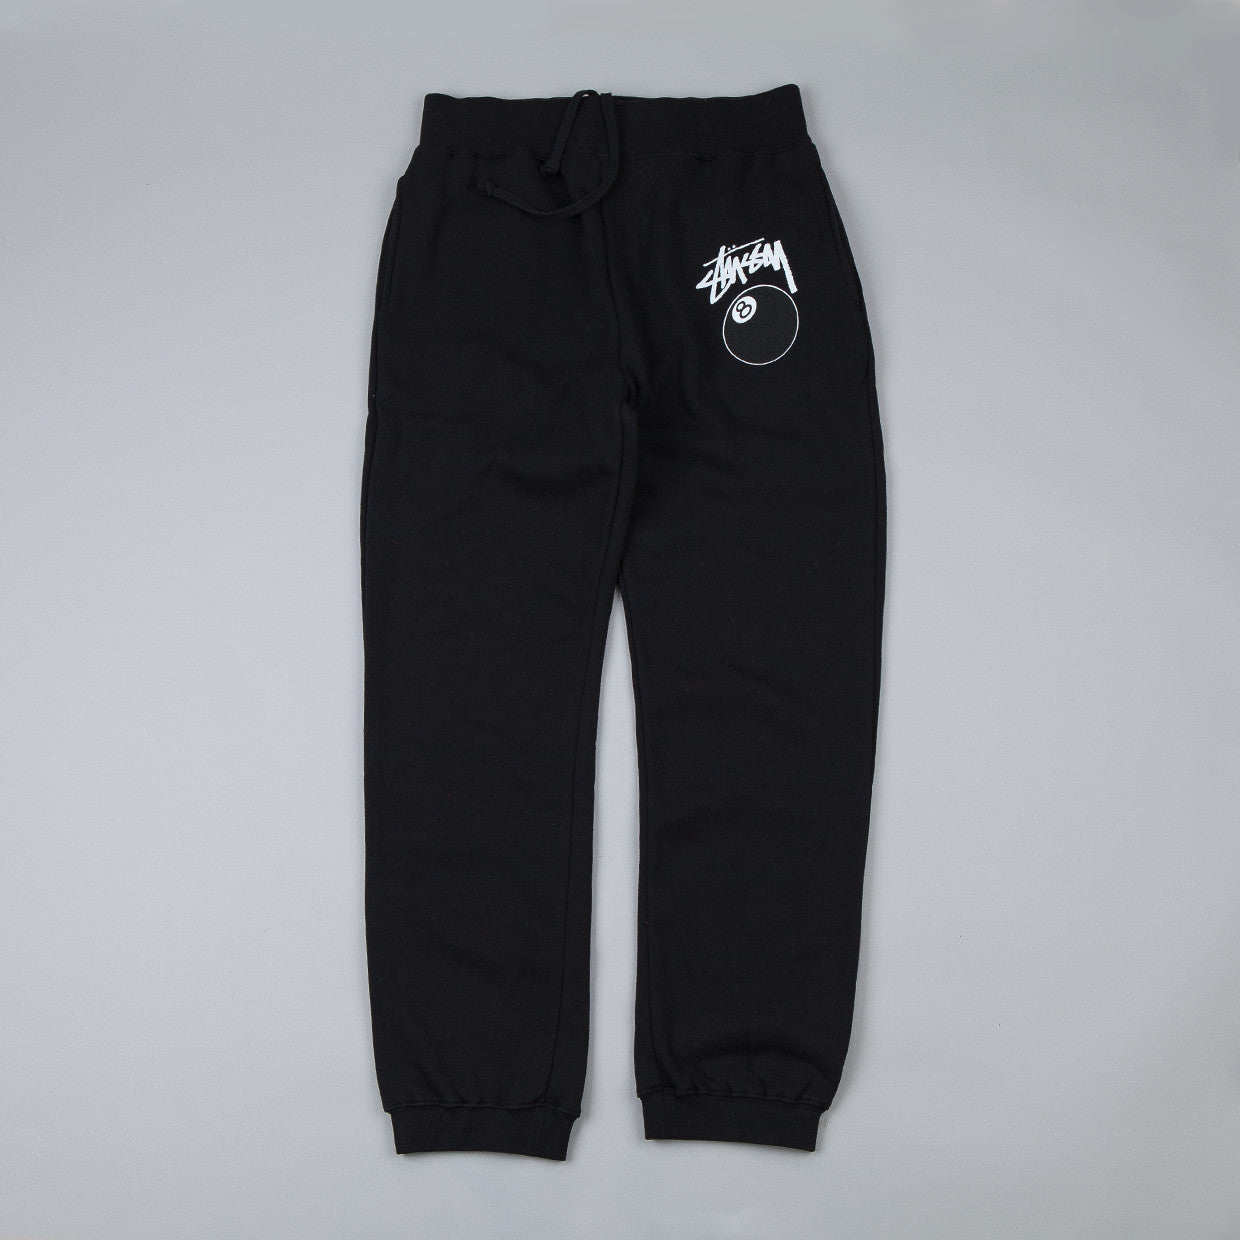 Stussy 8 Ball Sweatpants Black